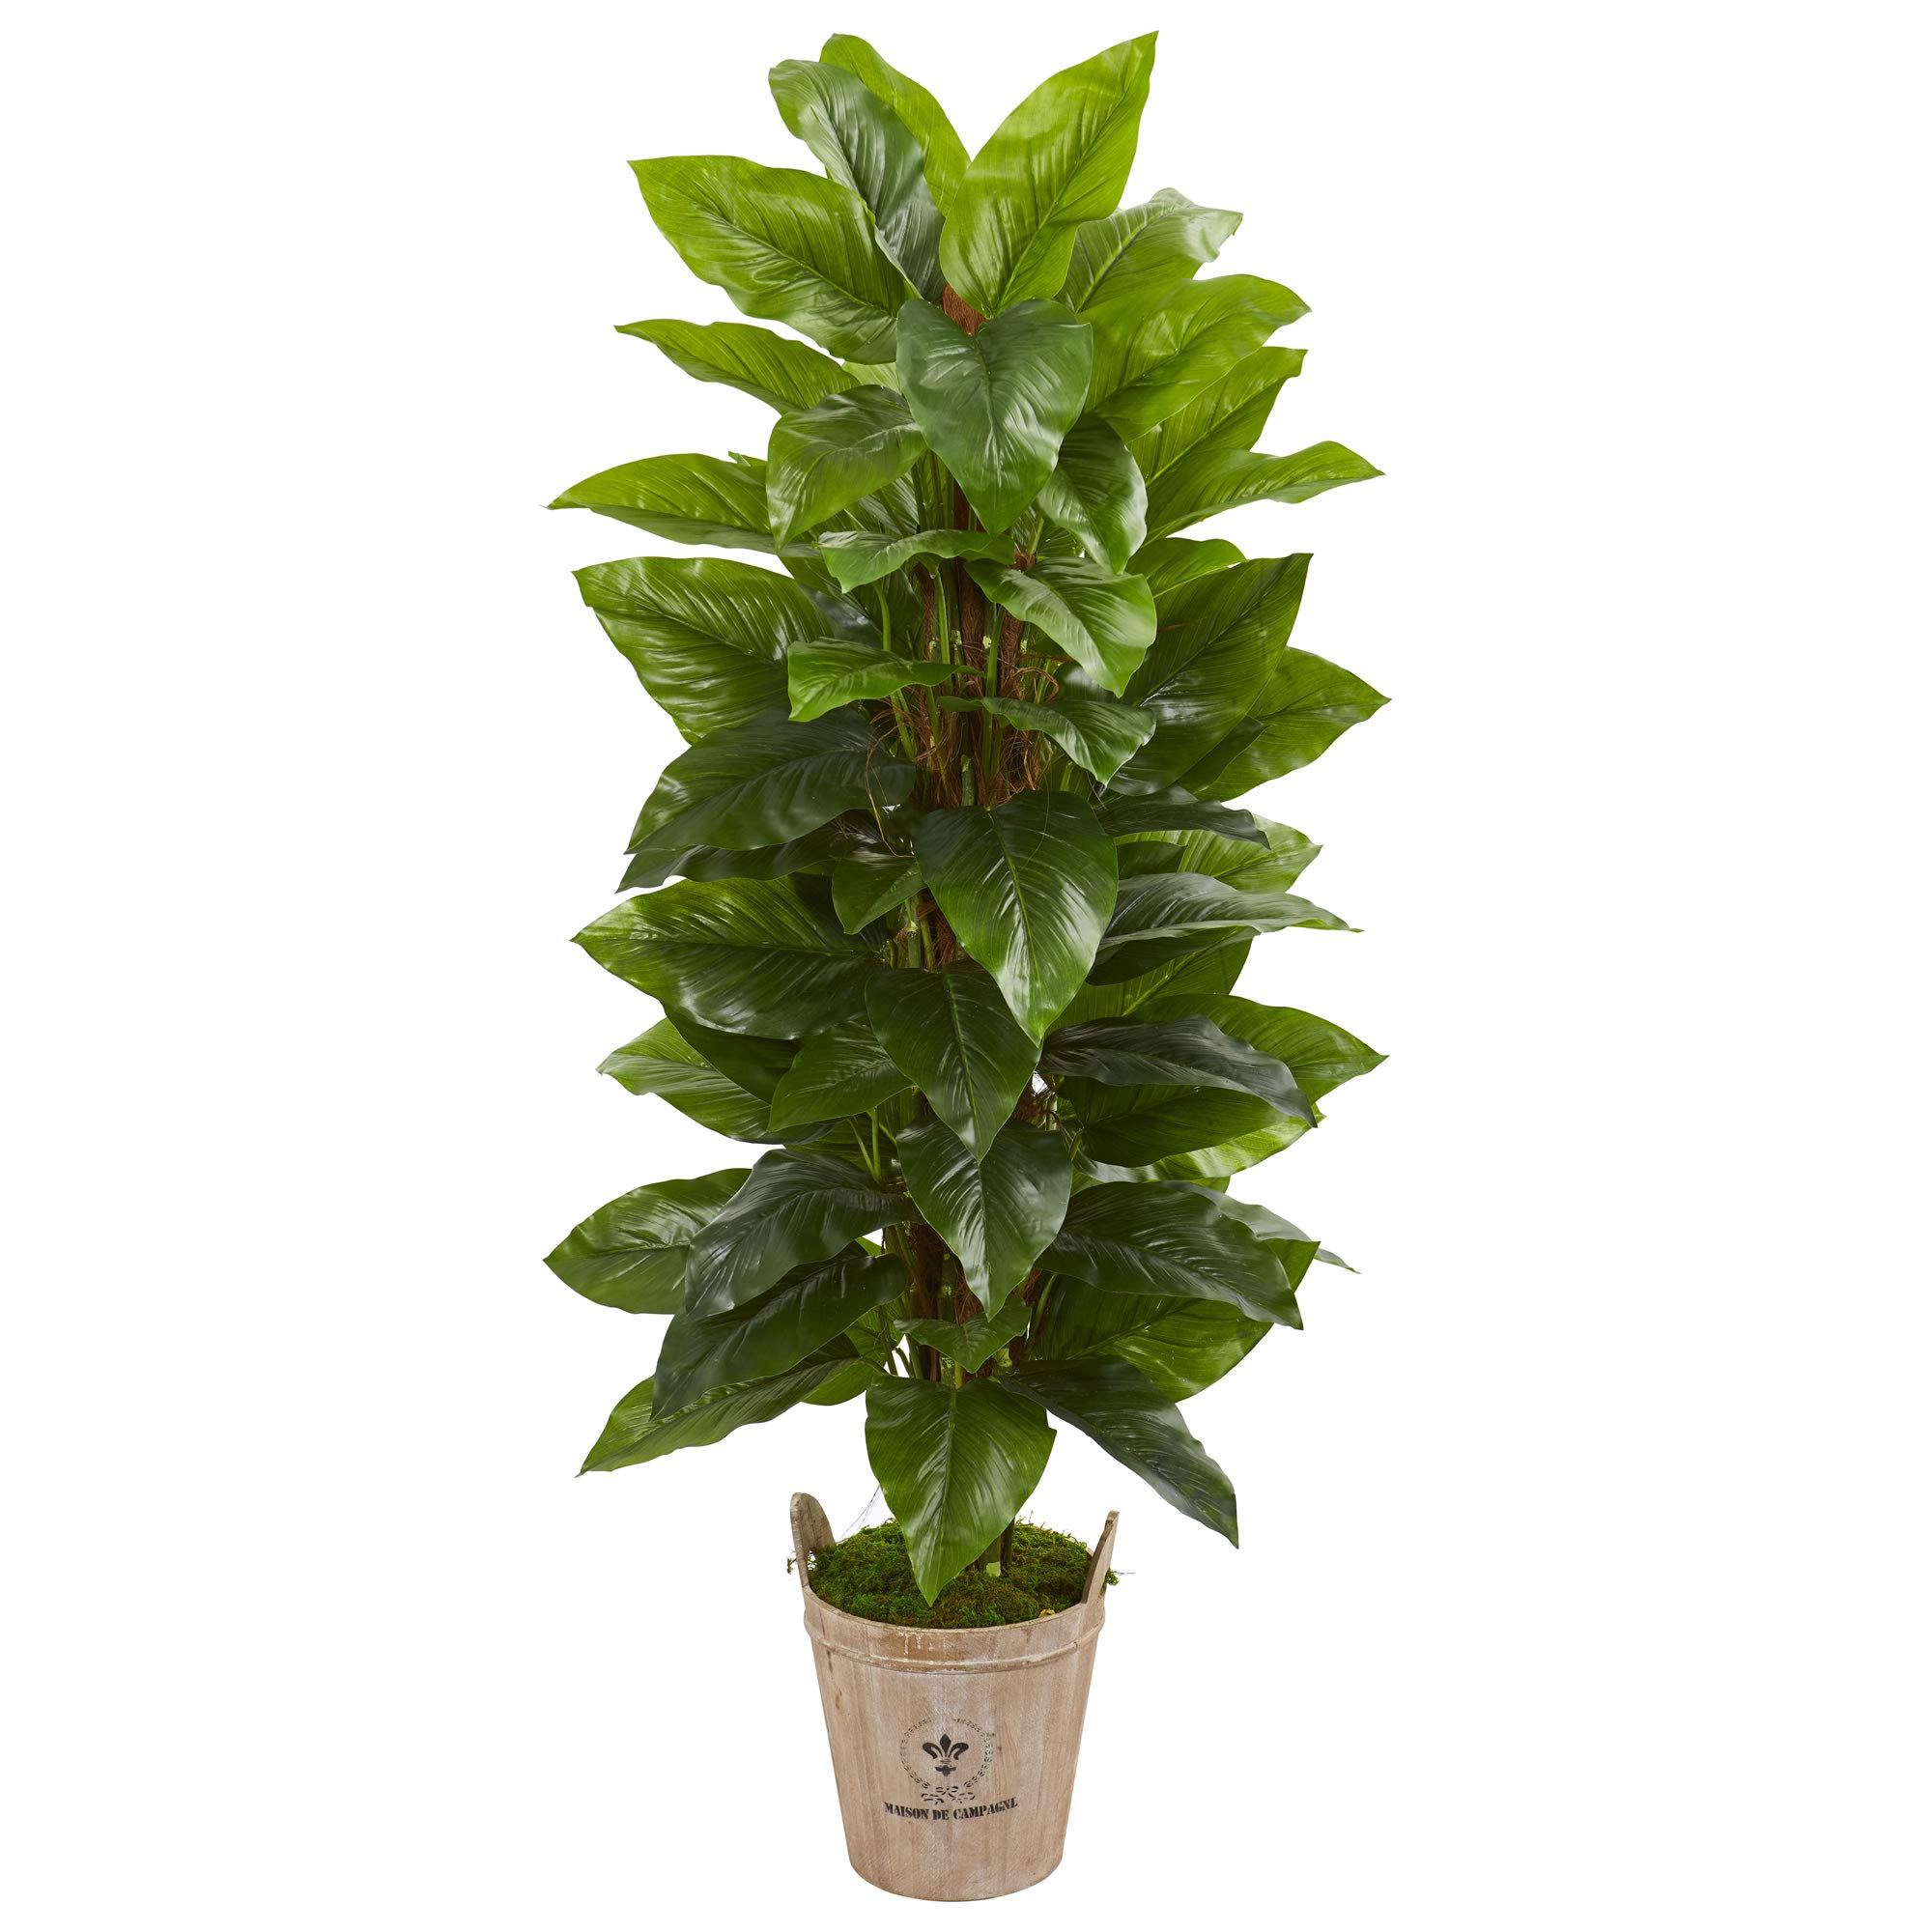 Nearly Natural 9354 63-in. Large Leaf Philodendron Artificial Farmhouse Planter (Real Touch) Silk Plants Green